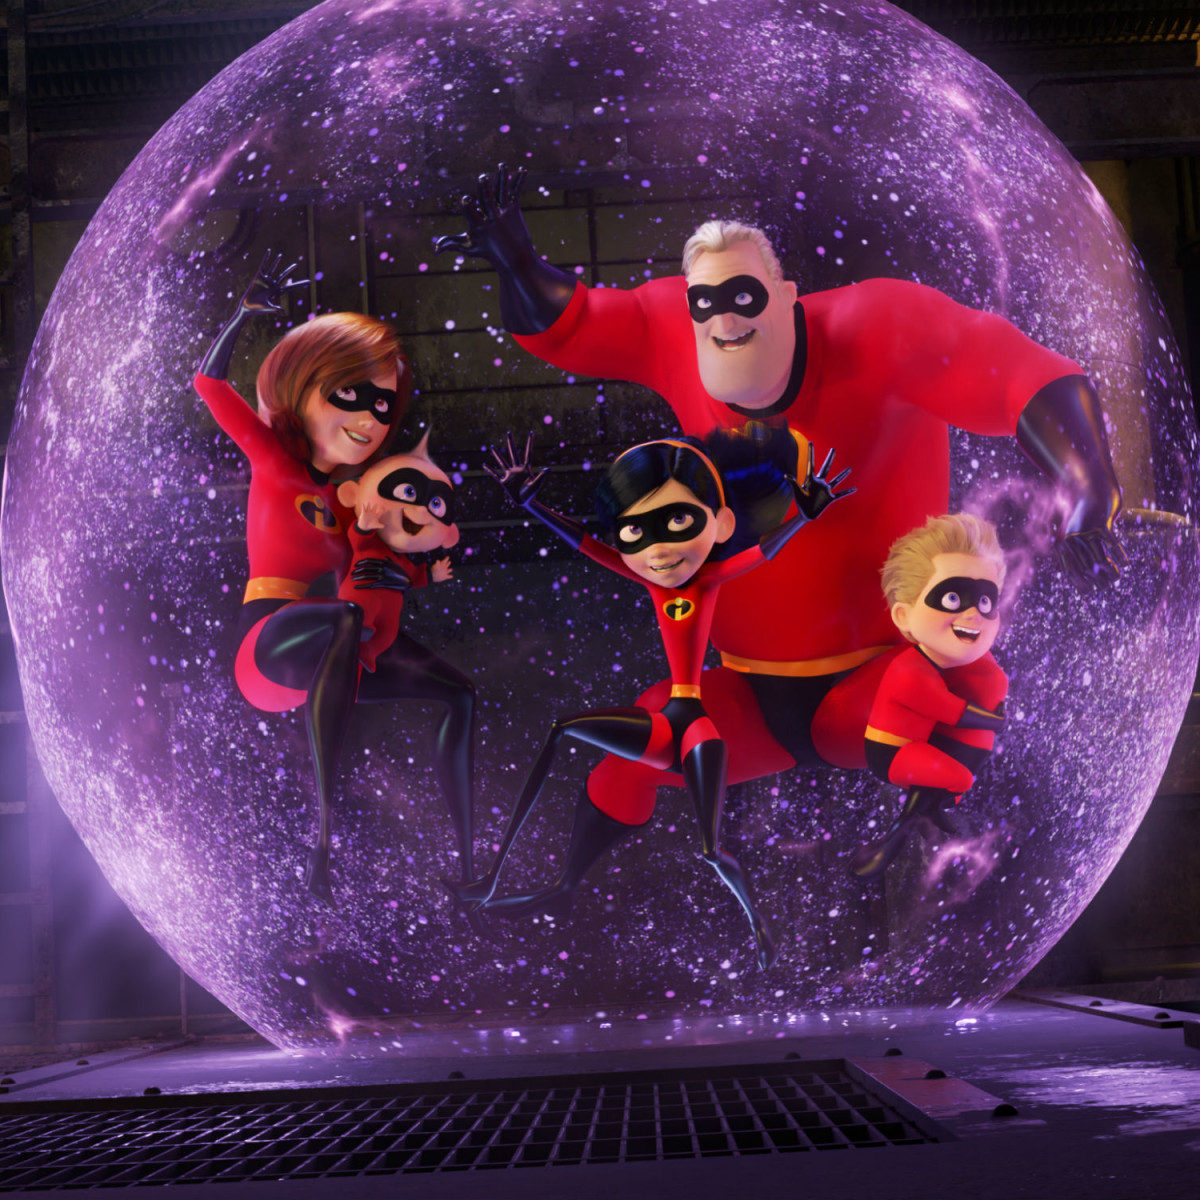 The Incredibles in Incredibles 2